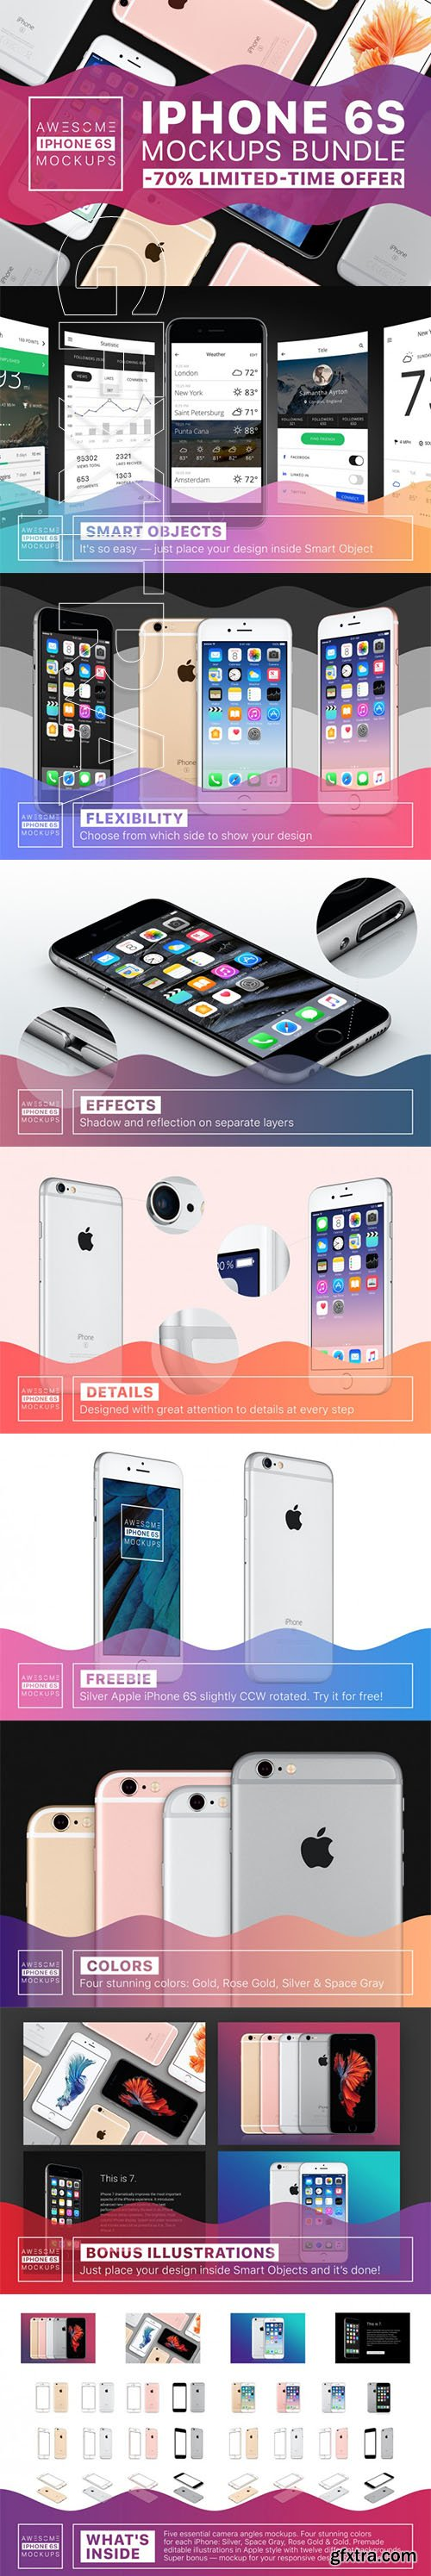 Awesome iPhone 6S Mockups